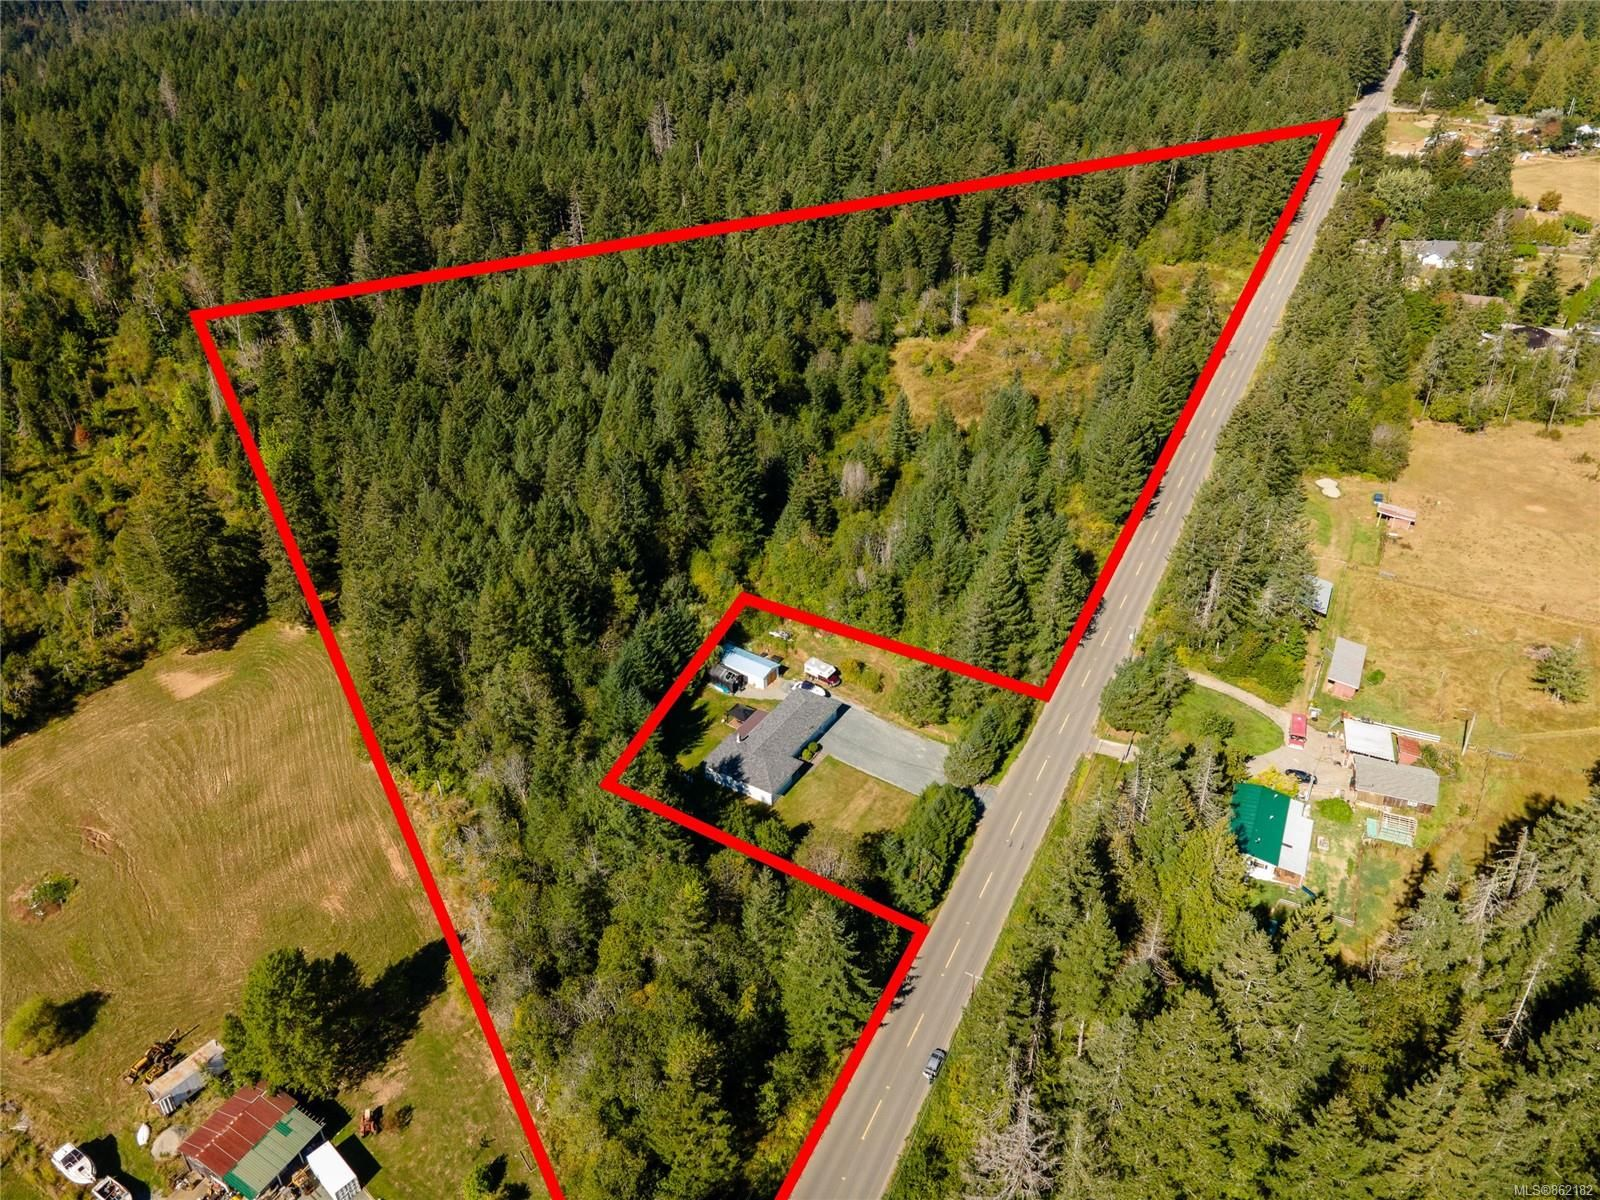 Main Photo: 7550 Beaver Creek Rd in : PA Alberni Valley Land for sale (Port Alberni)  : MLS®# 862182